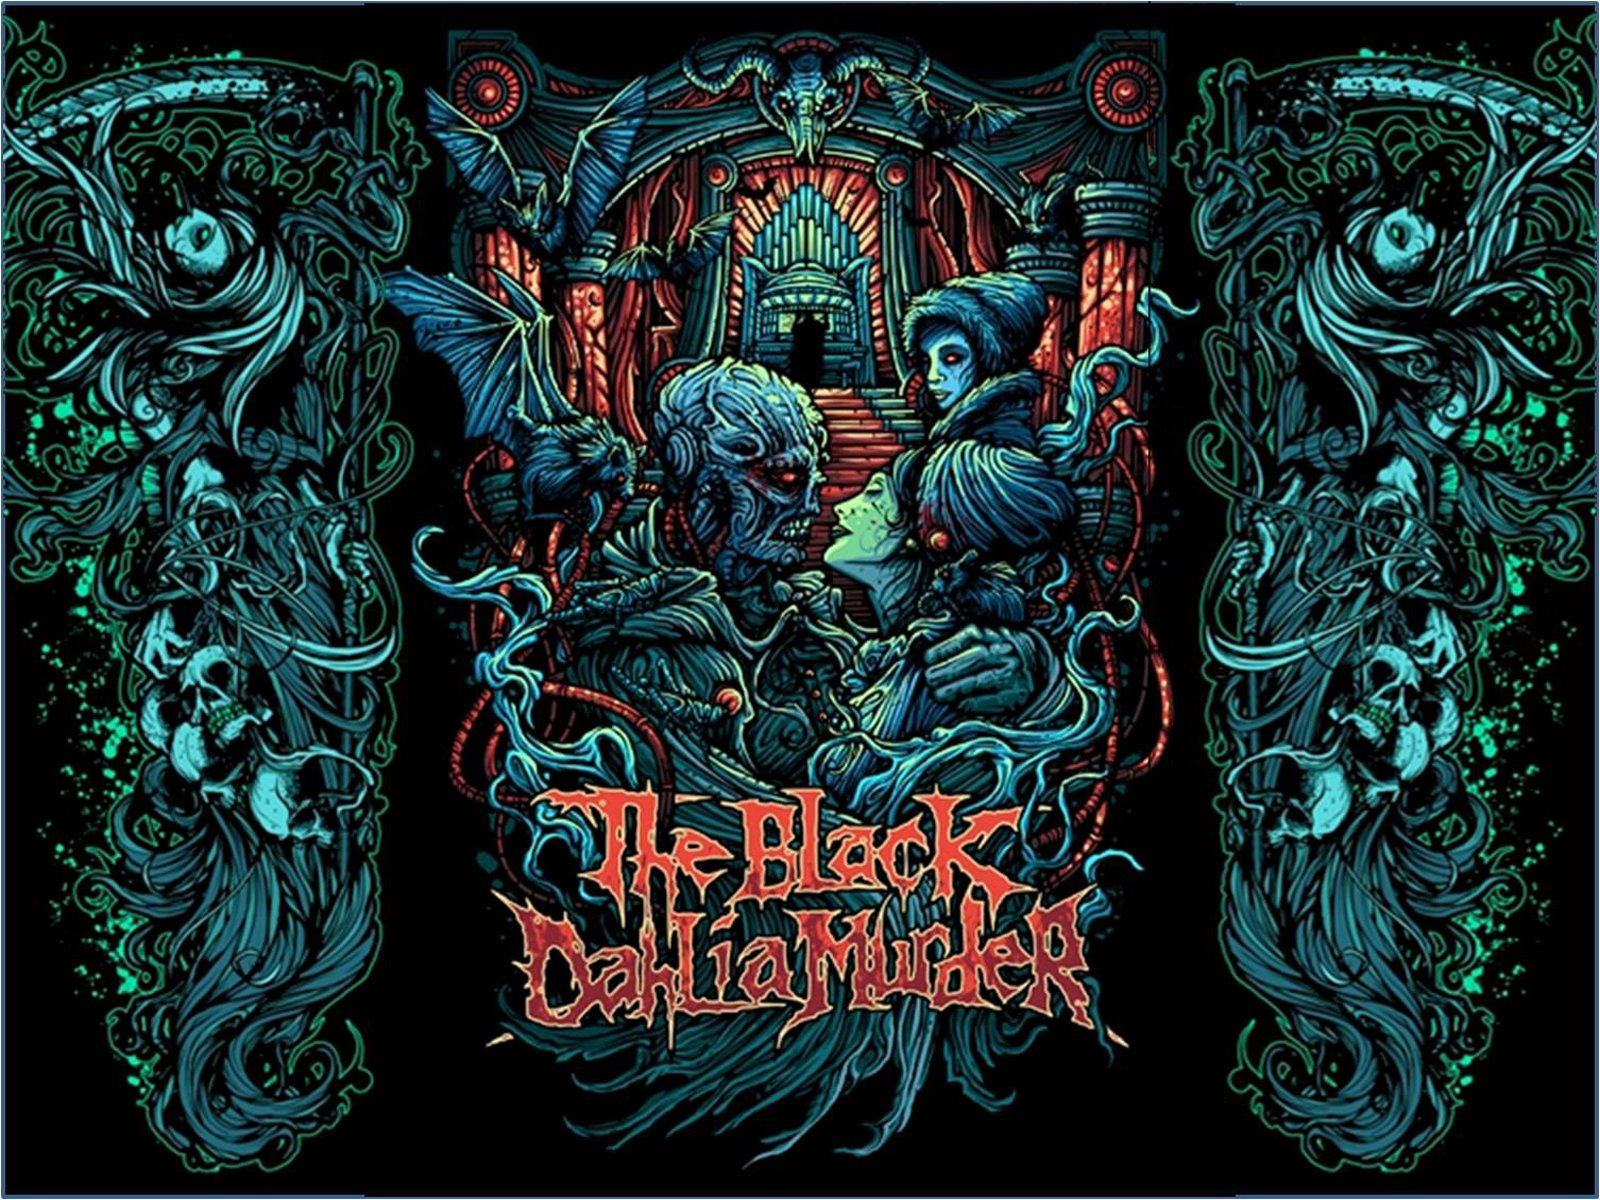 The Black Dahlia Murder Wallpaper and Background